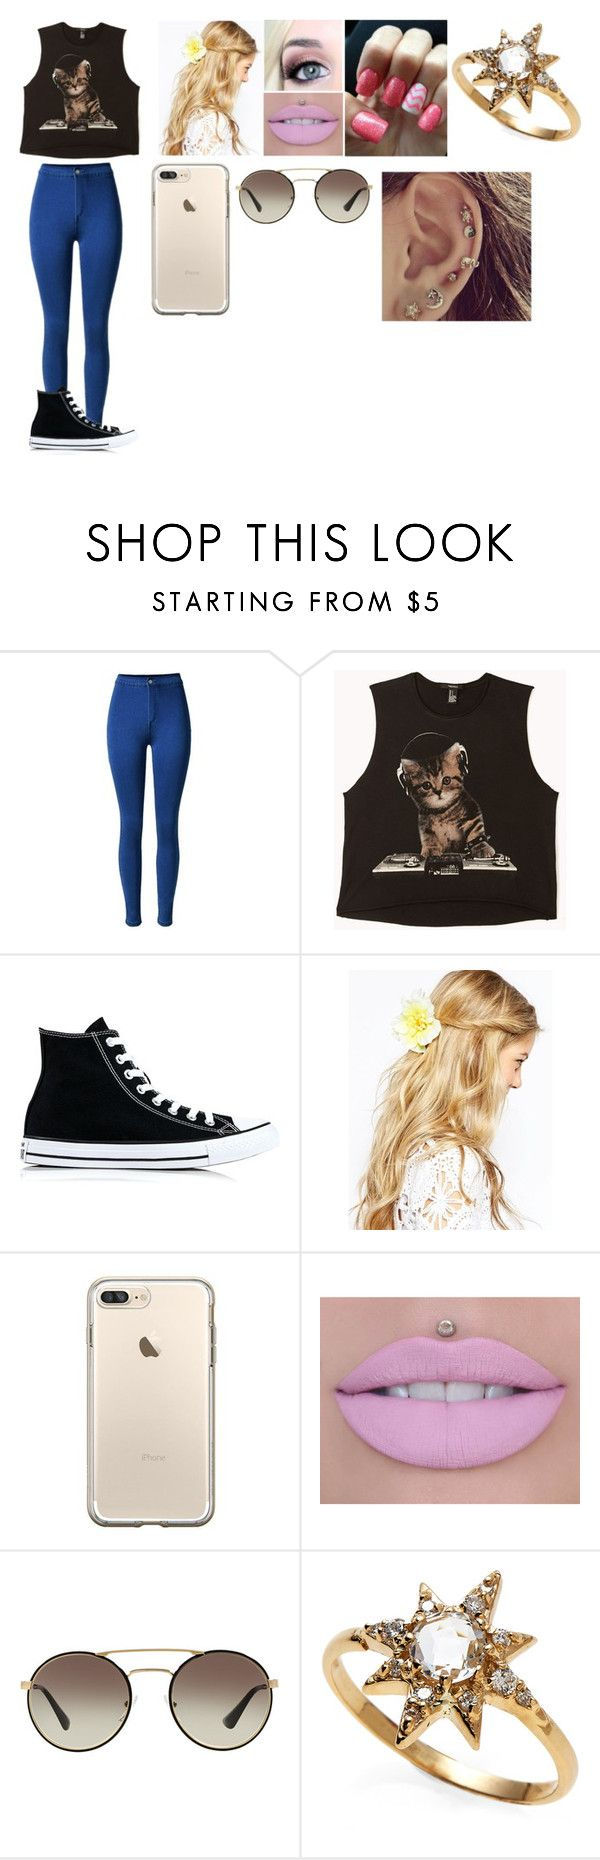 """DJ Cat"" by luana-hemmings ❤ liked on Polyvore featuring Forever 21, Converse, ASOS, Prada and Anzie"